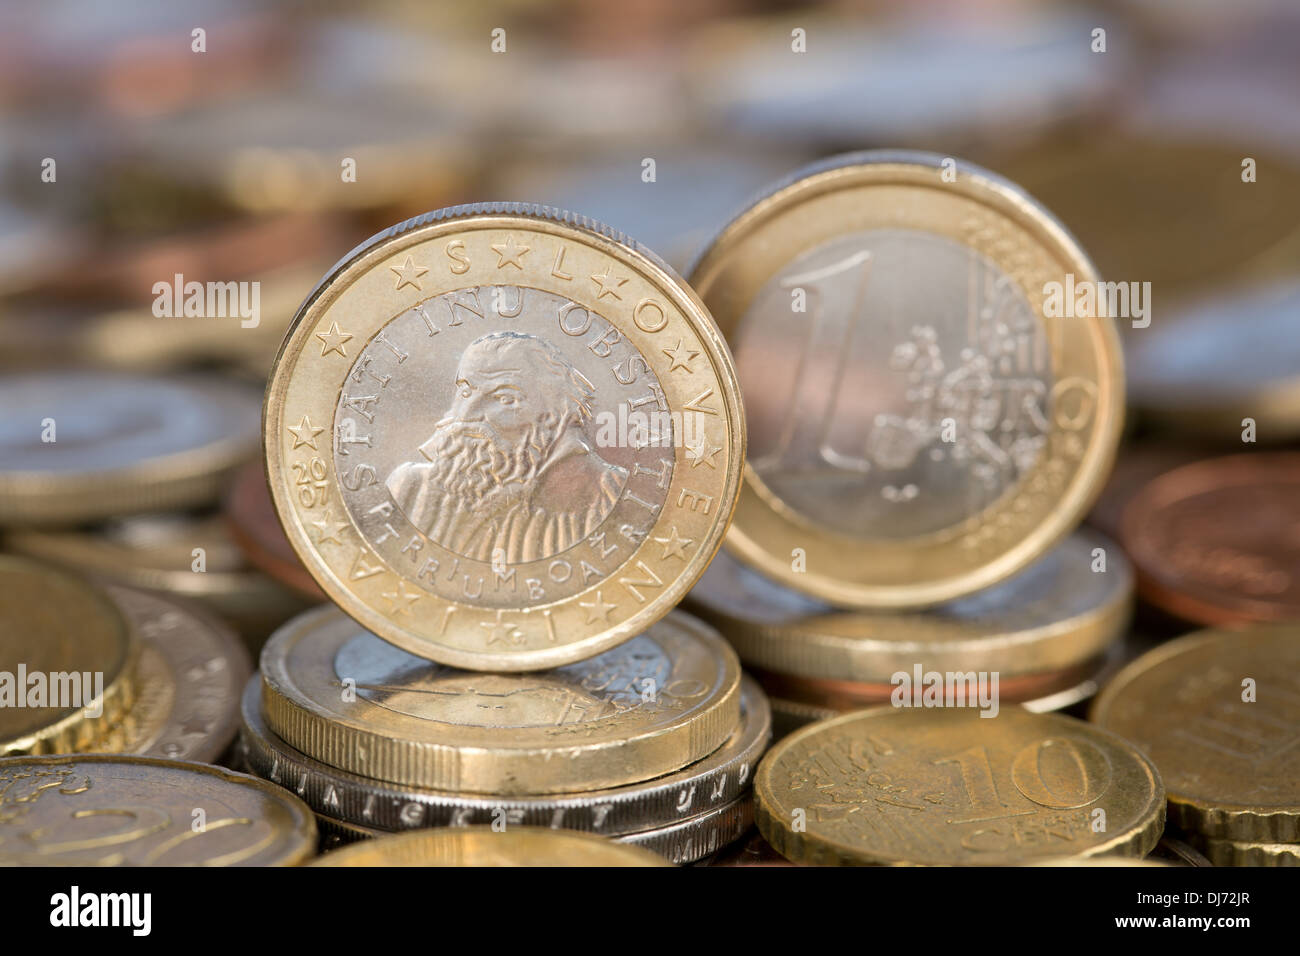 A one Euro coin from the EU member country Slovenia - Stock Image